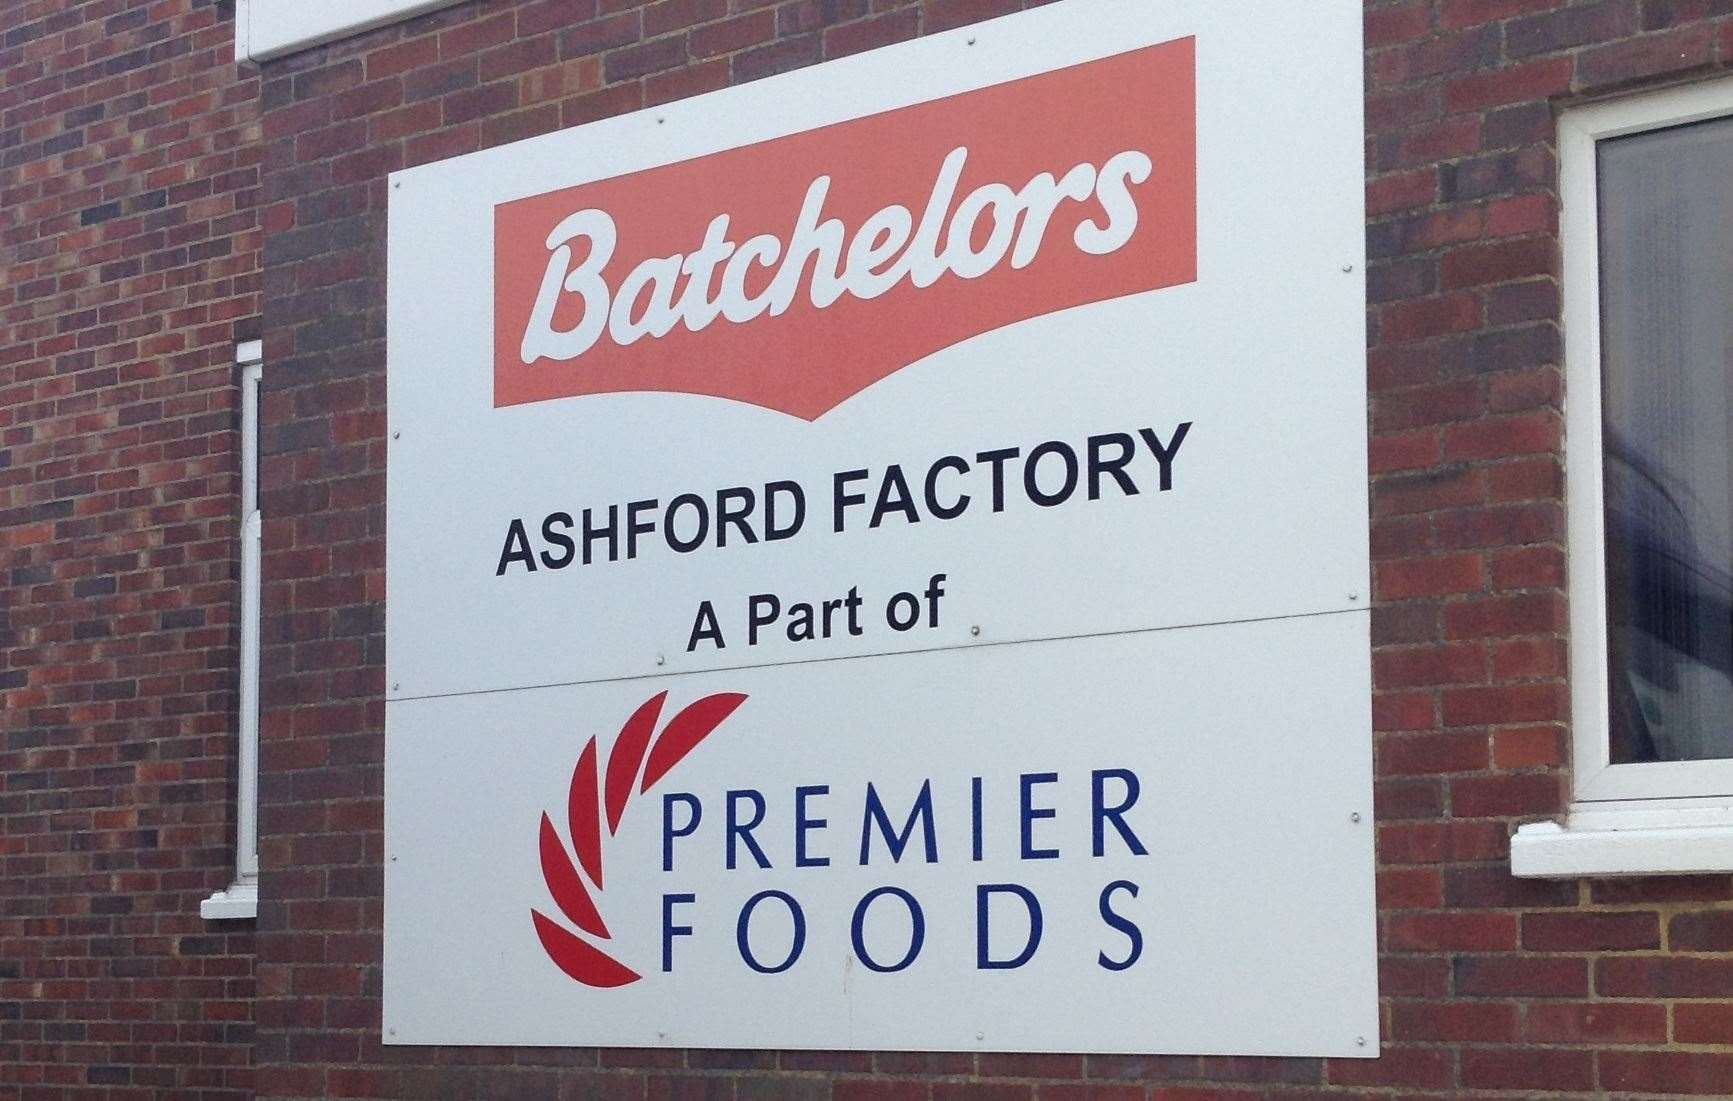 The Batchelors Cup-a-Soup factory in Ashford